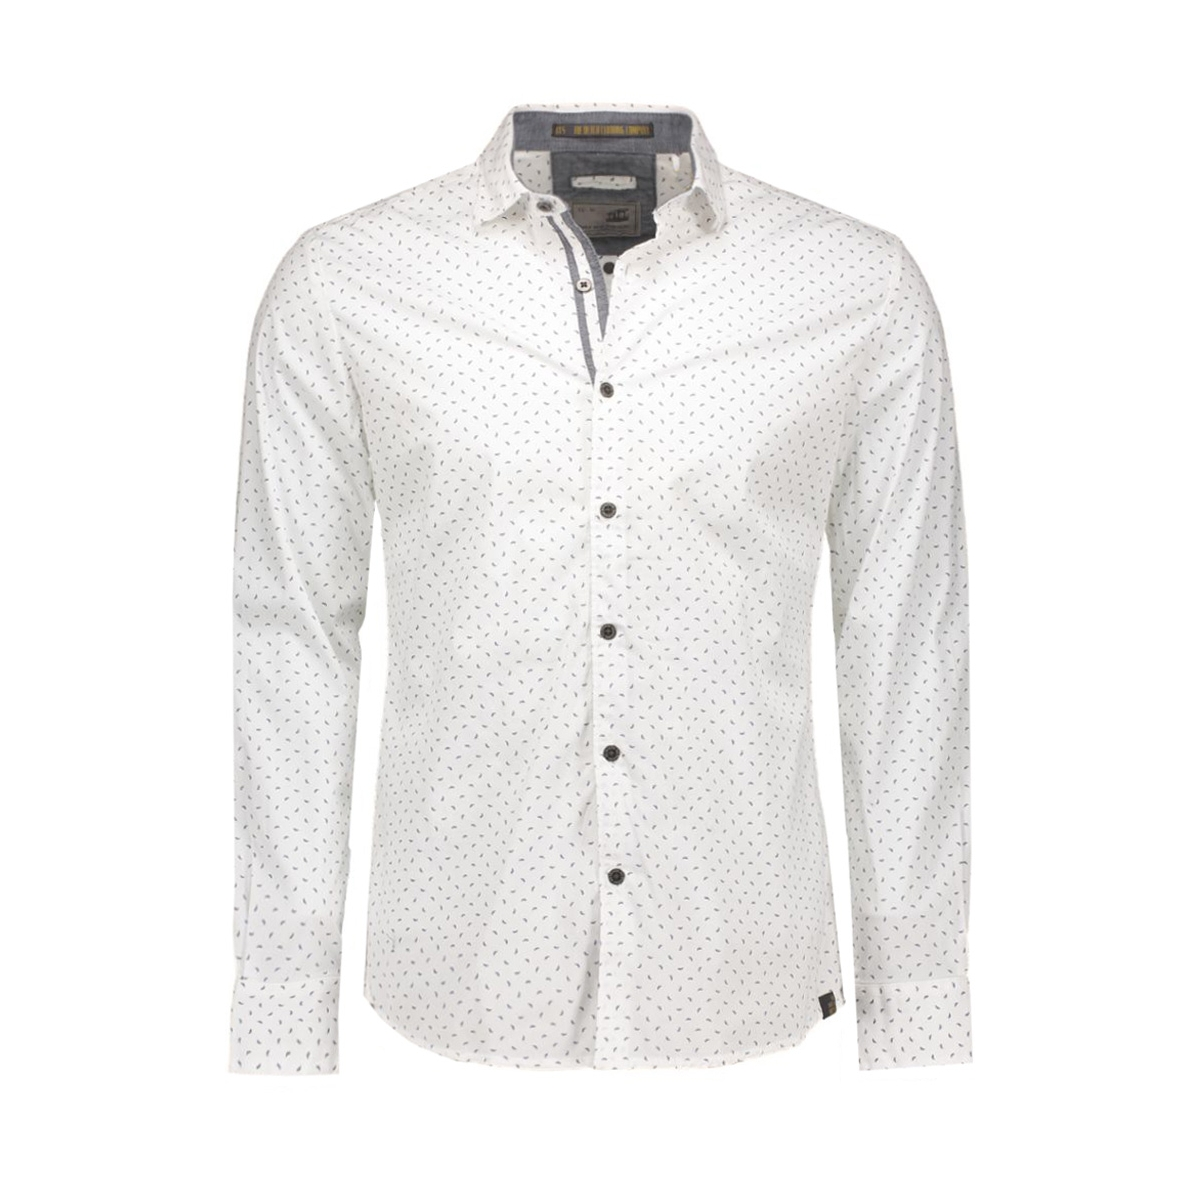 78450903 no-excess overhemd 010 white